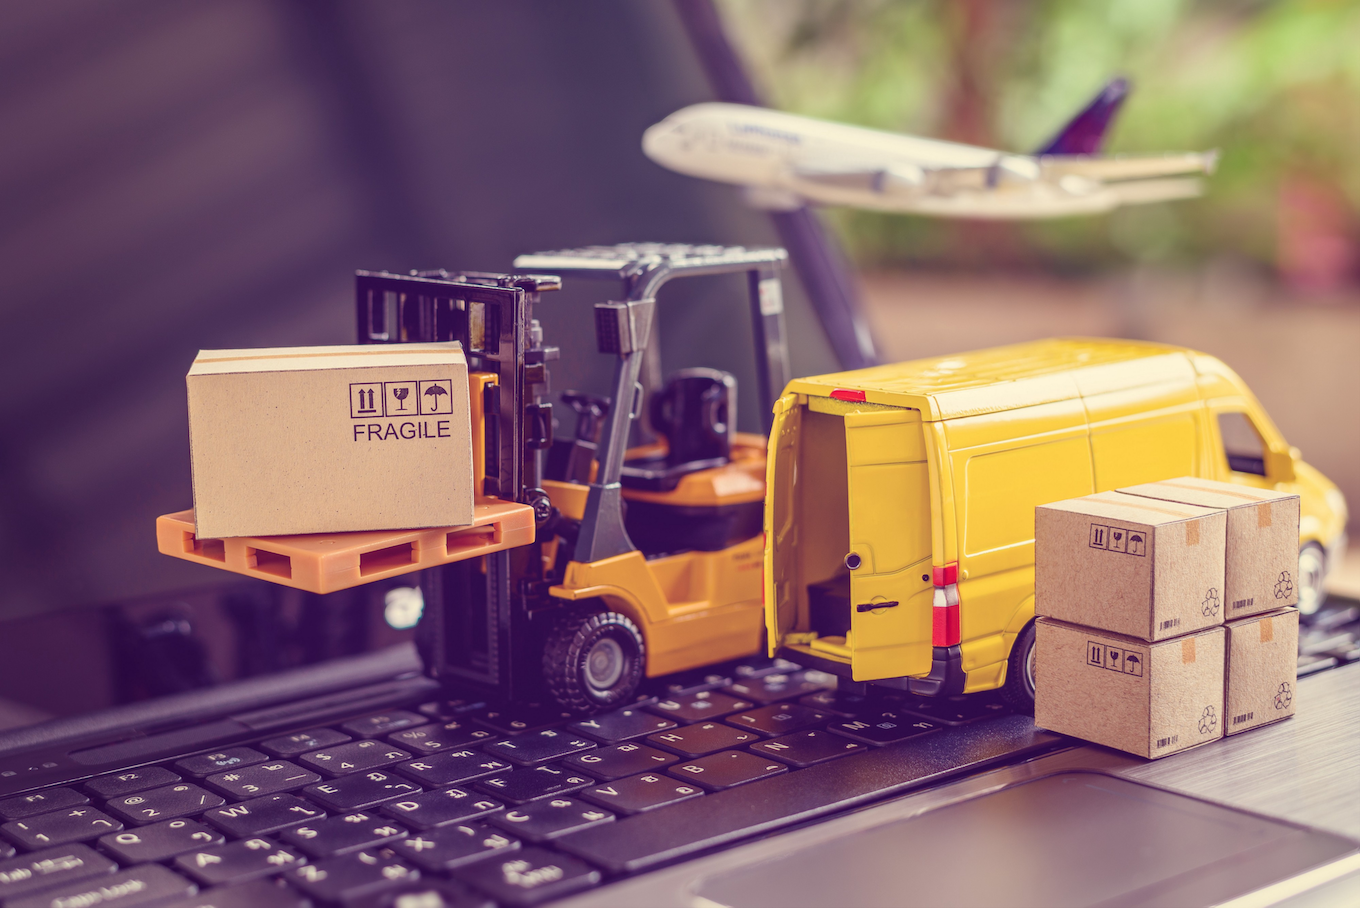 Retailers must invest in advanced digital systems that integrate first-mile and last-mile logistics, says Mercado Labs CEO Robert Garrison.